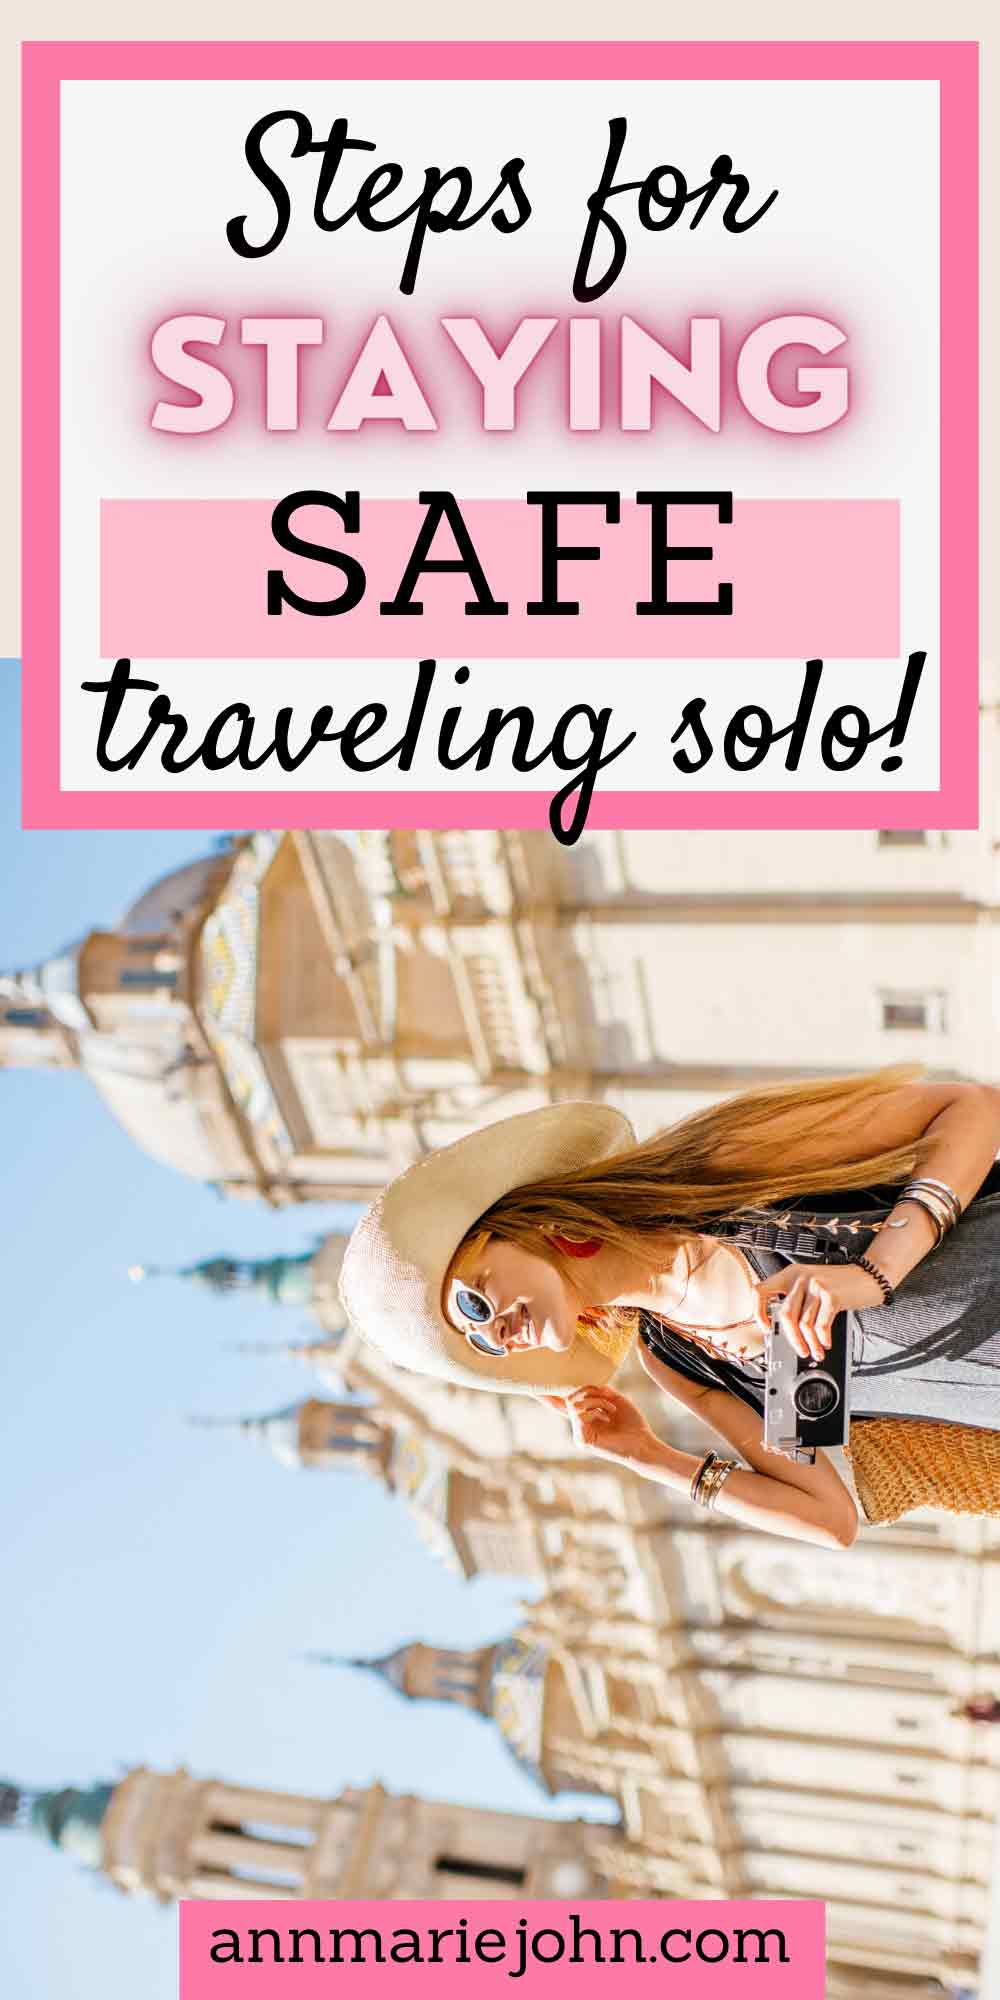 Steps For Staying Safe When Traveling Solo